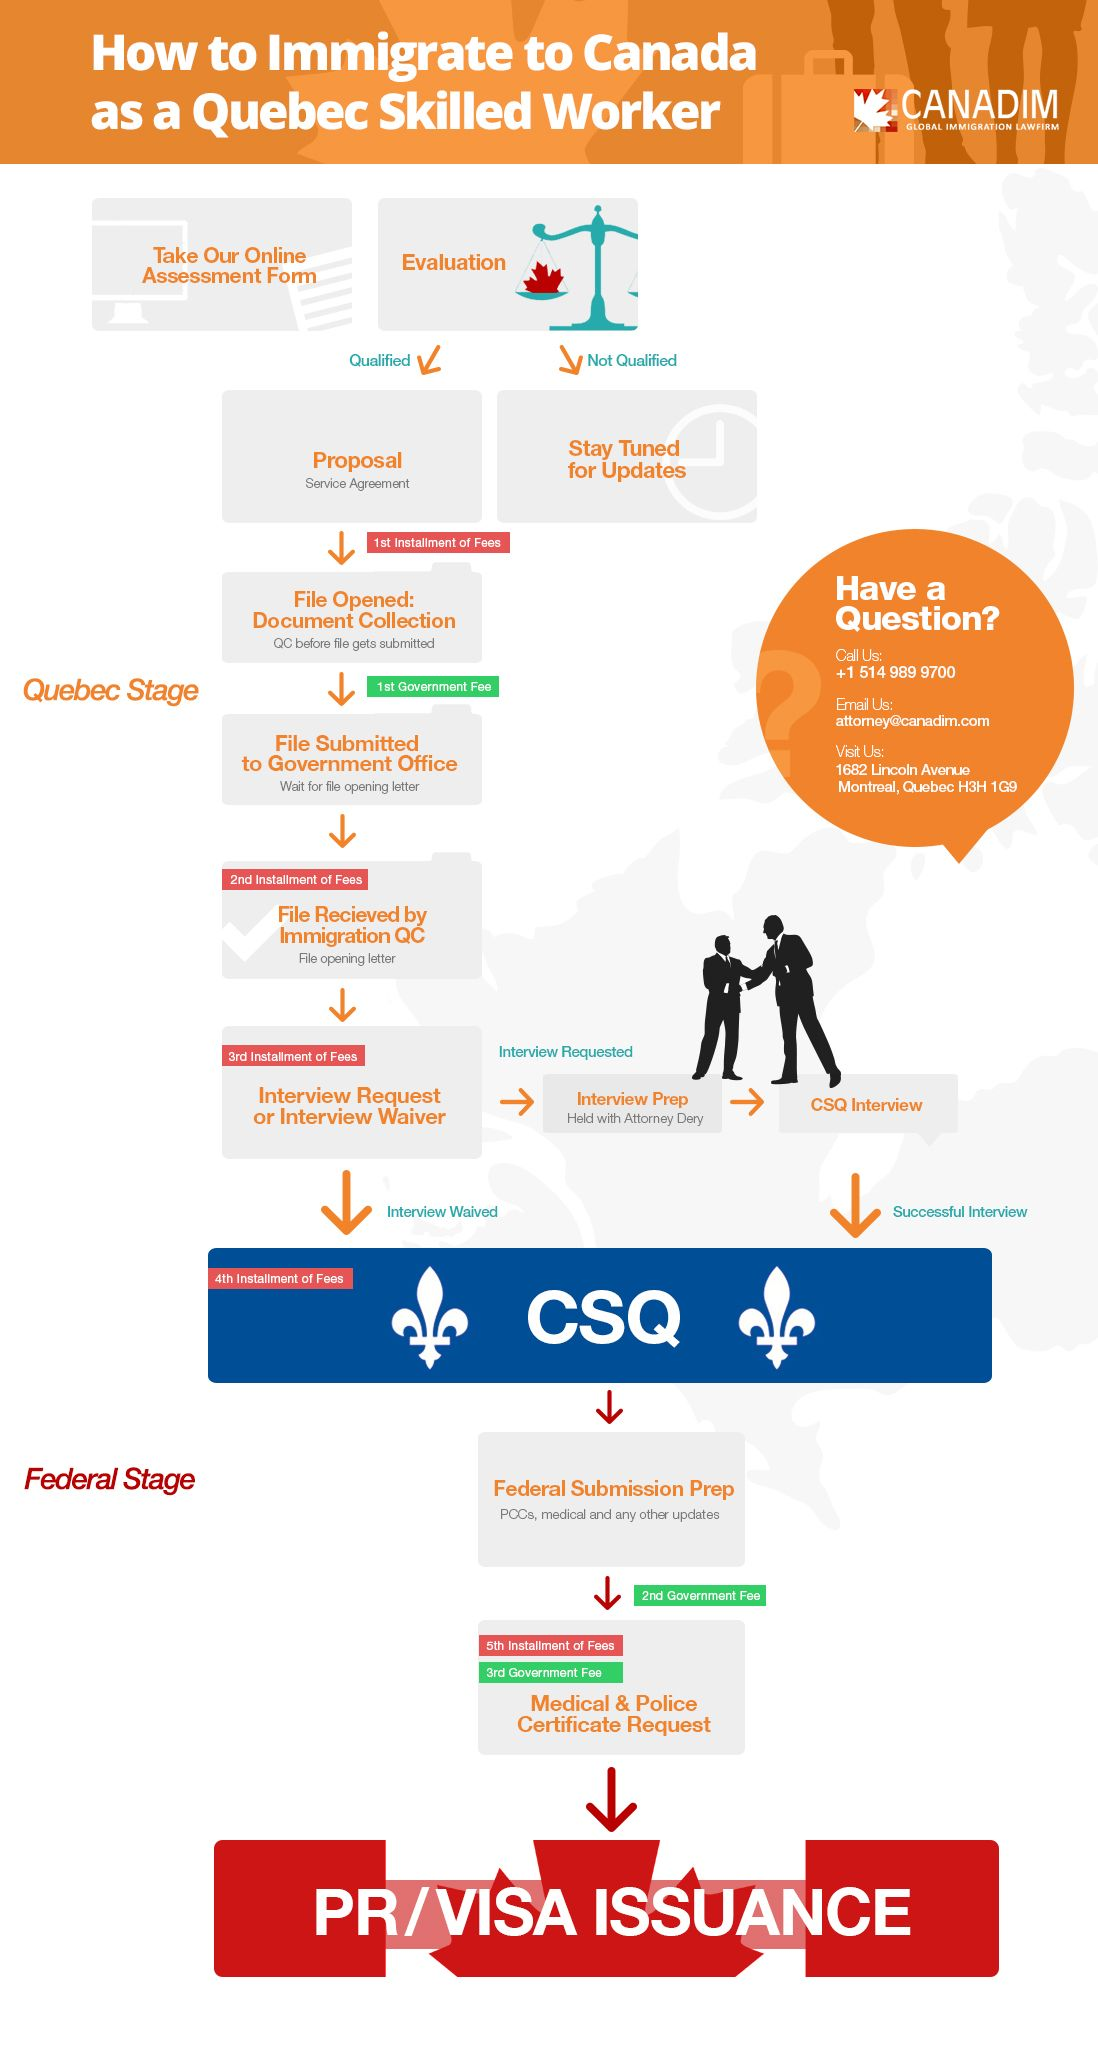 How to Immigrate to Canada as a Quebec Skilled Worker